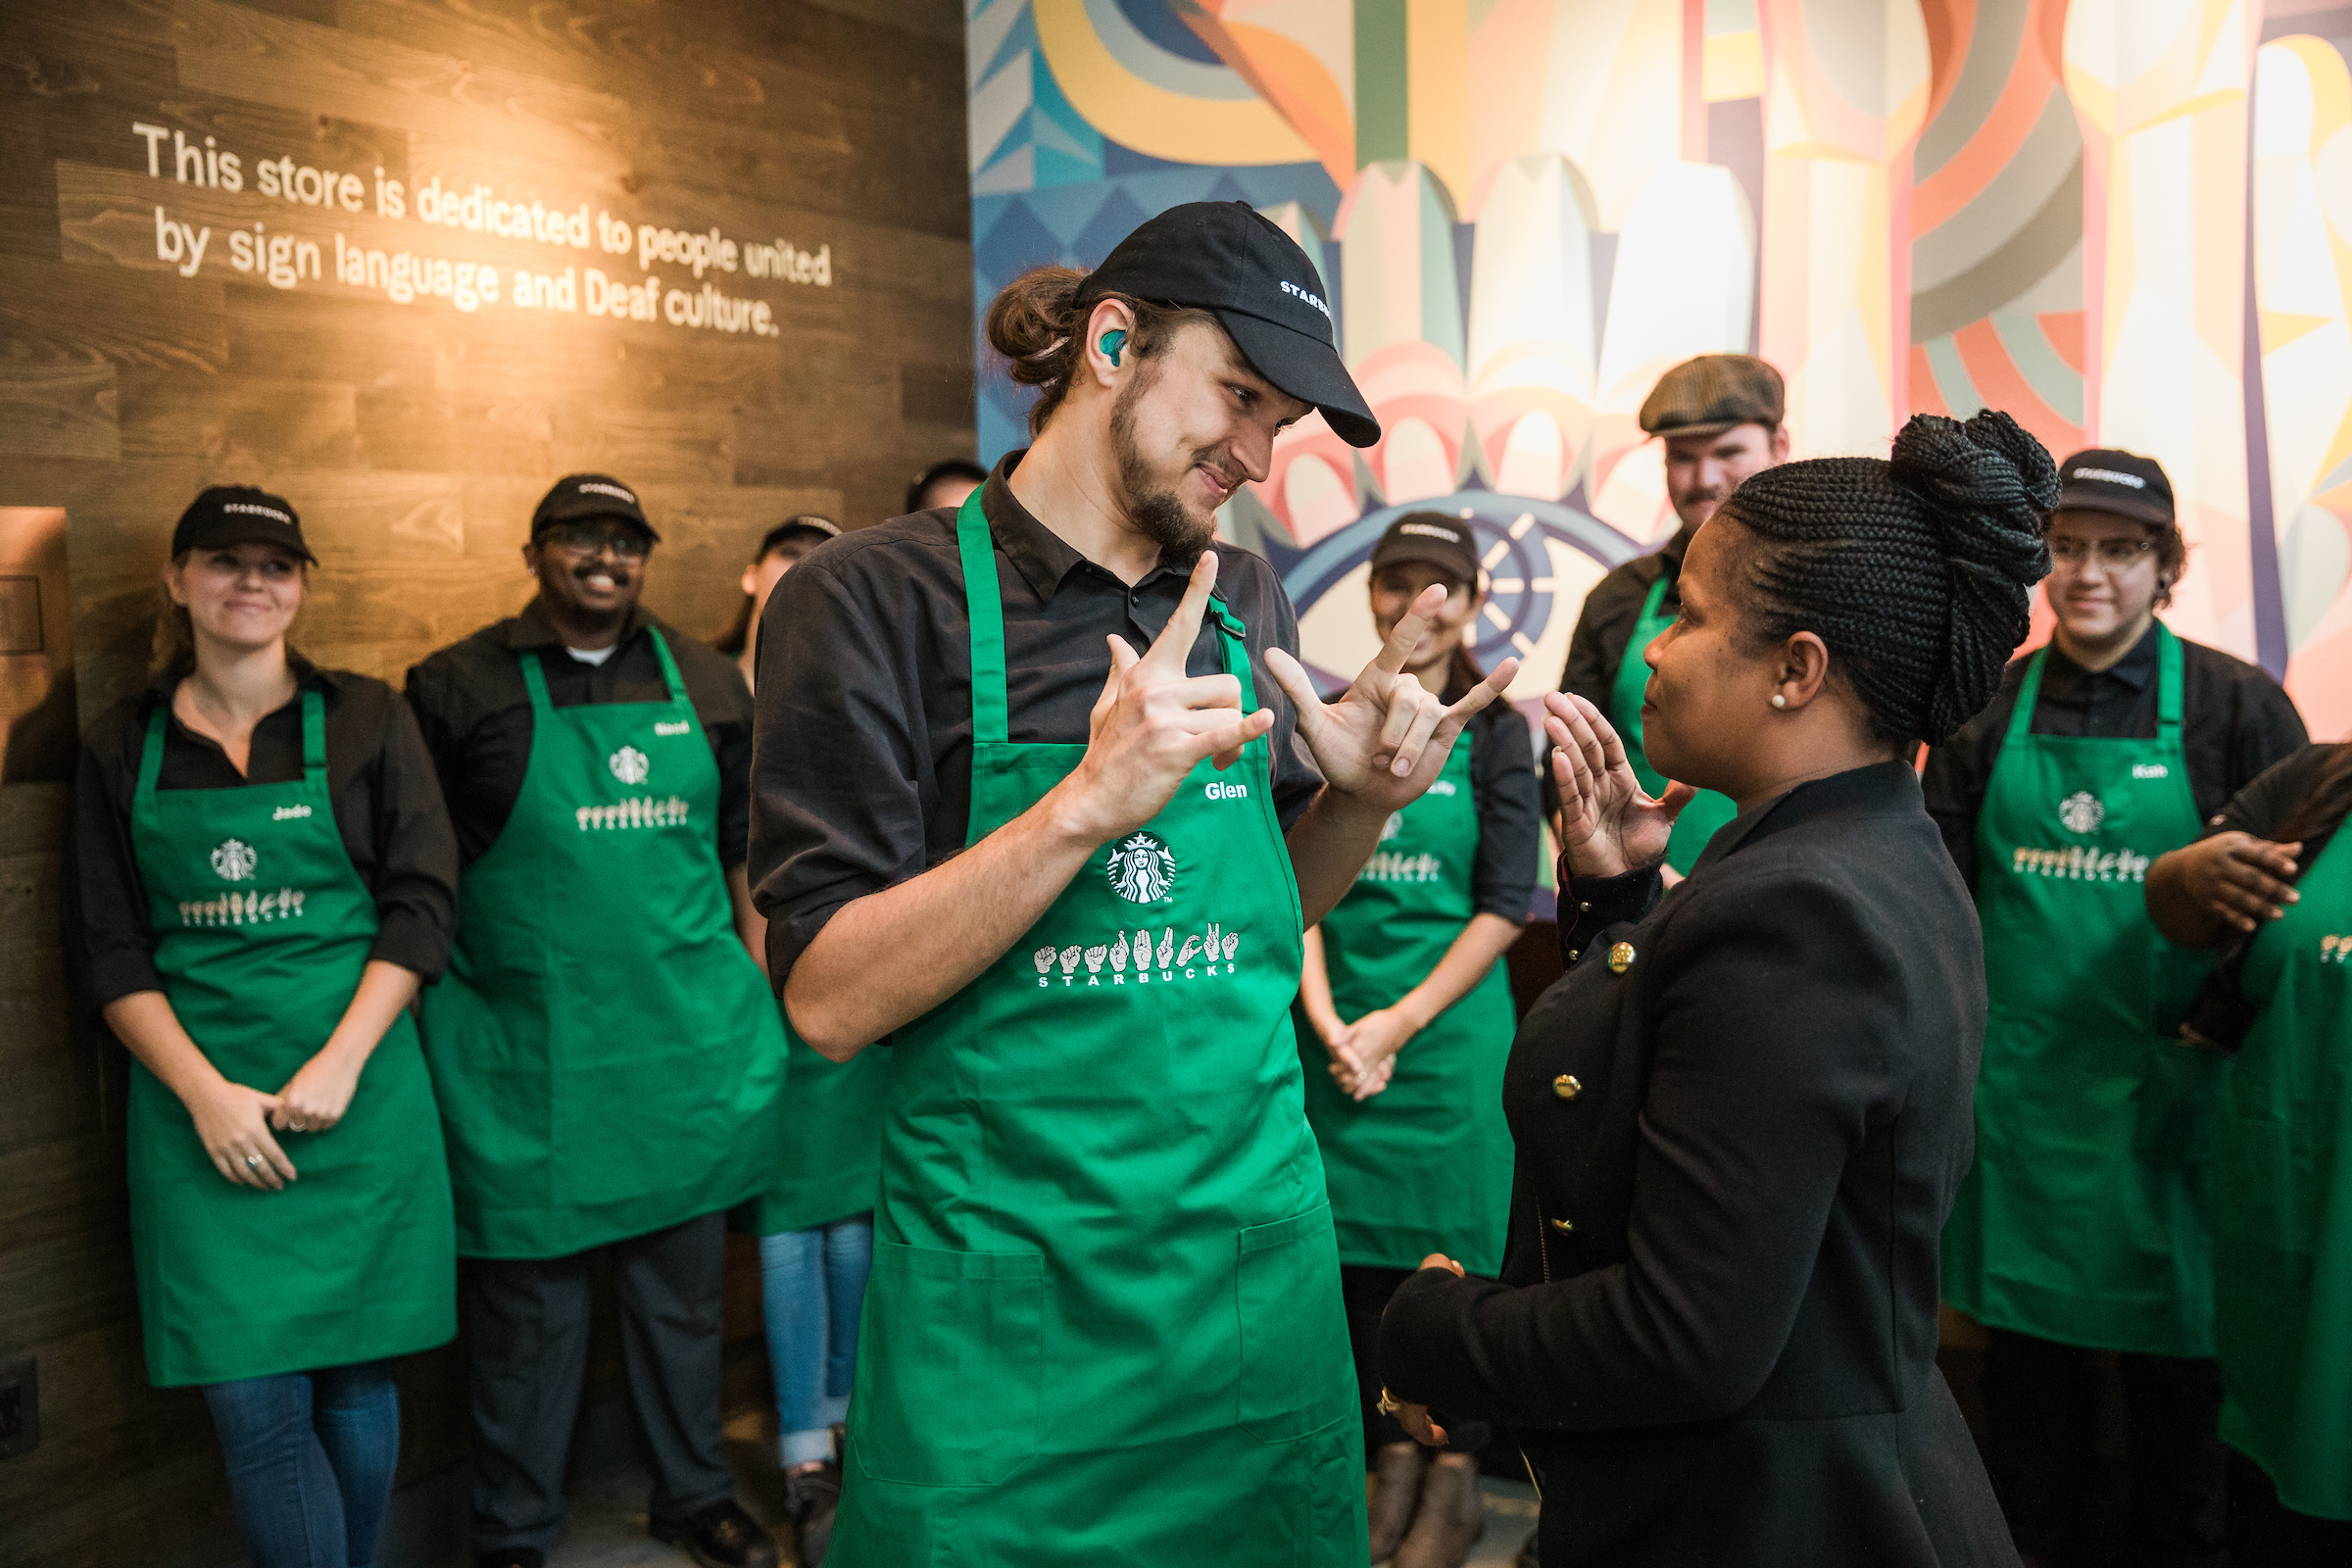 Starbucks District Manager Margaret Houston presents an apron to partner Glen Cole on Saturday, October 20, 2018 at Starbucks first U.S. Signing Store in Washington D.C.{ }(Image: Joshua Trujillo, Starbucks)